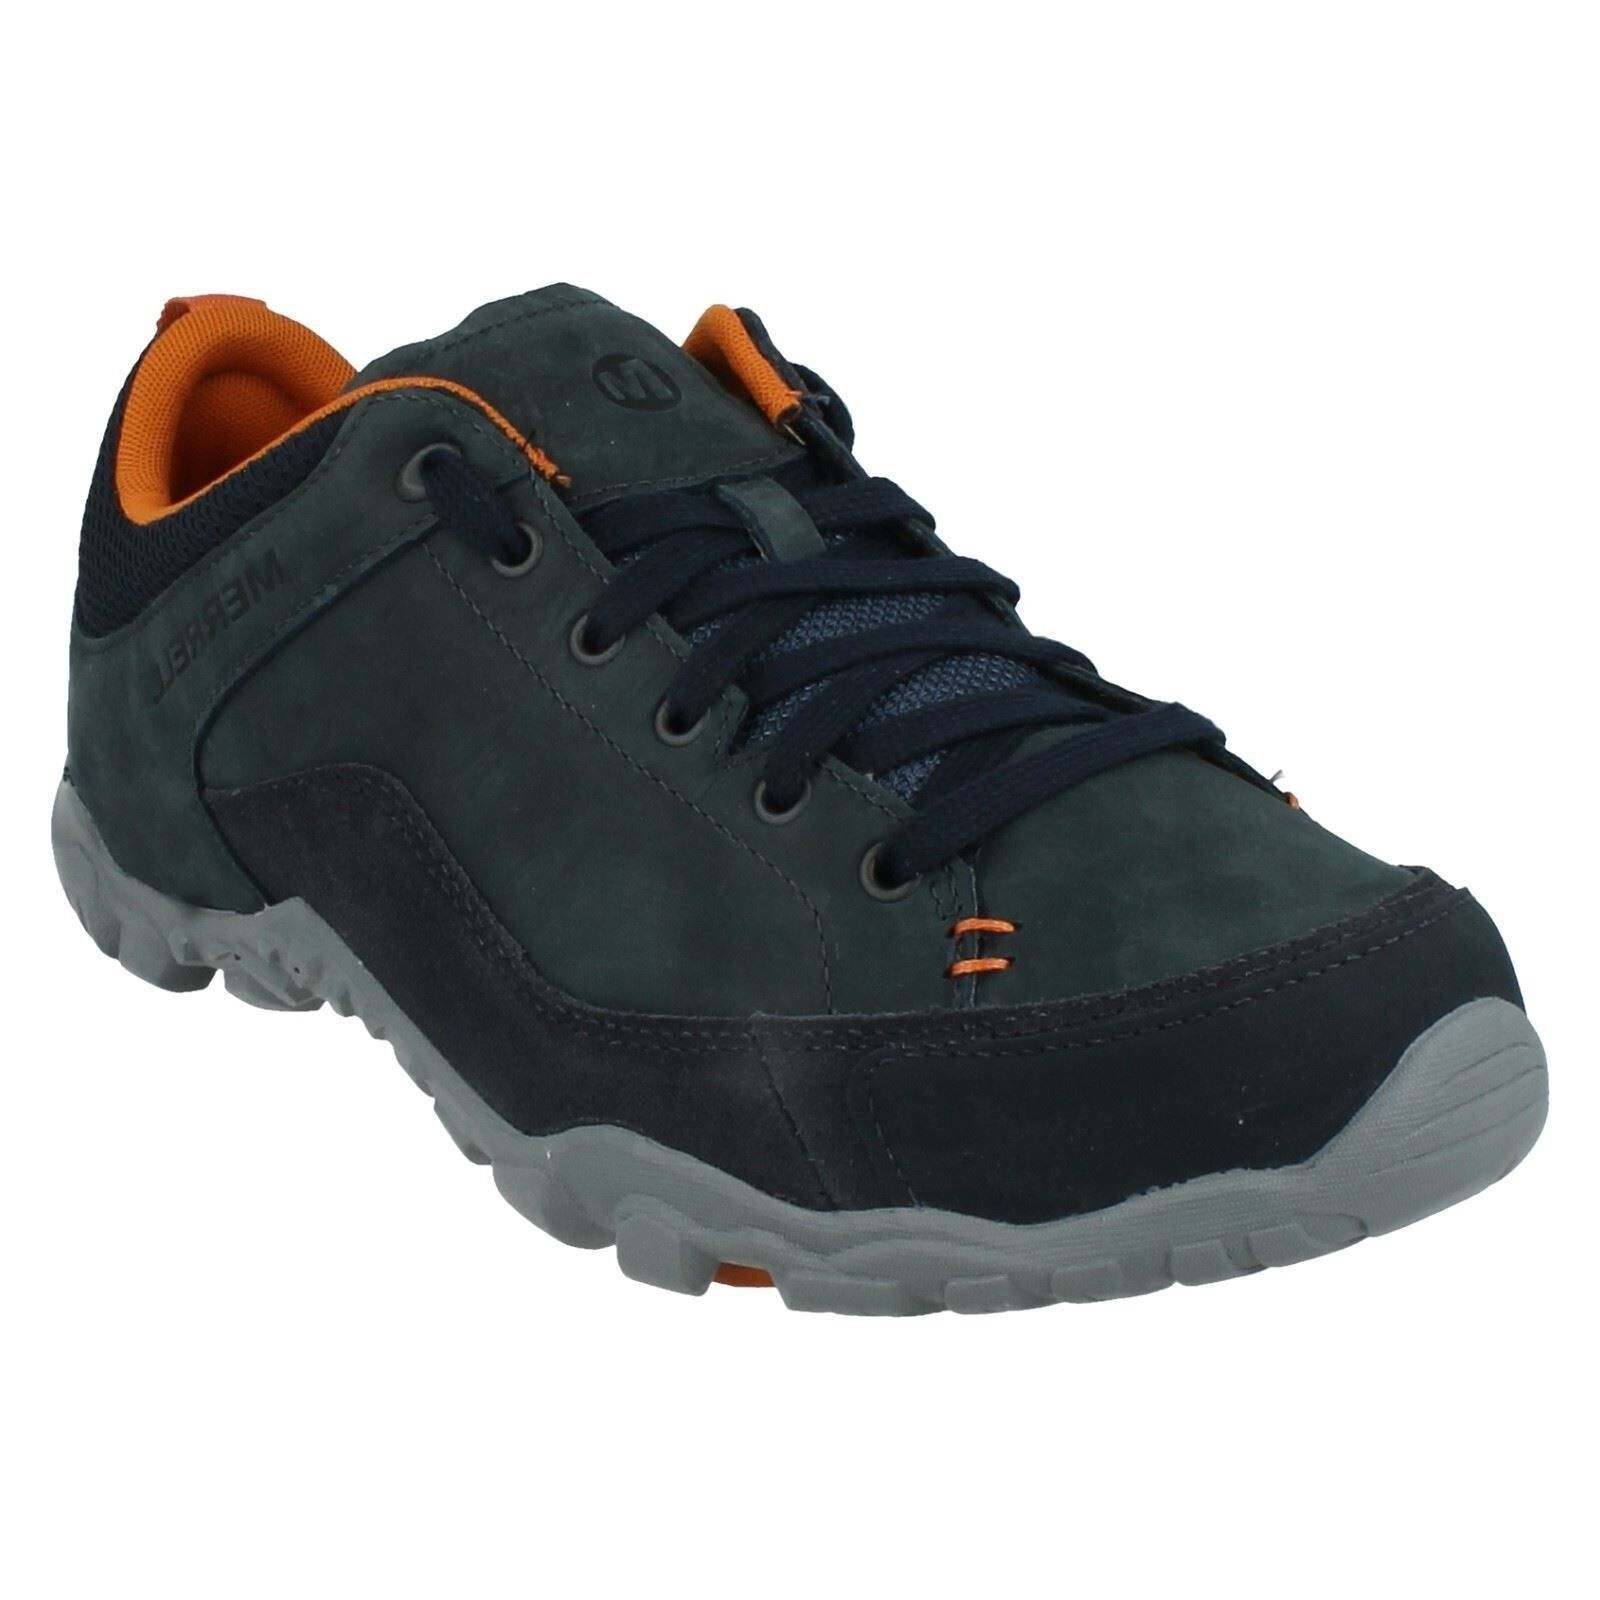 Hombre MERRELL LACE UP UP UP NAVY LEATHER WALKING Zapatos TRAINERS TELLURIDE LACE 1065f9